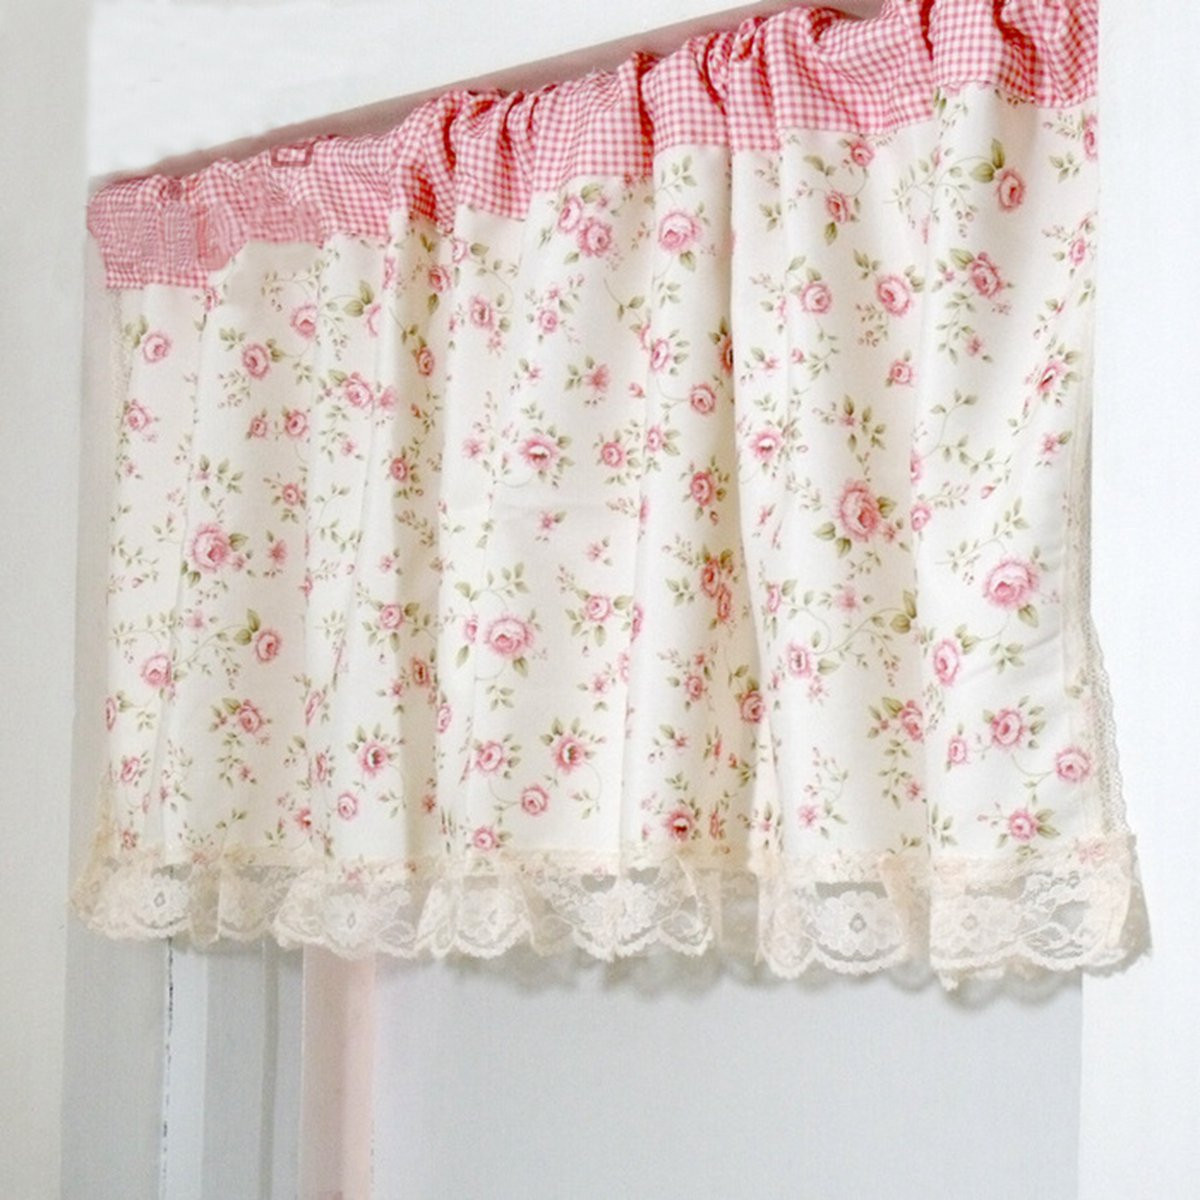 Pastoral Foral Flower Printed Door Window Curtain Sheer Valance Cloth With Lace Drape Veil Panel Rod Bedroom Room Decor <font><b>150X50cm</b></font> image